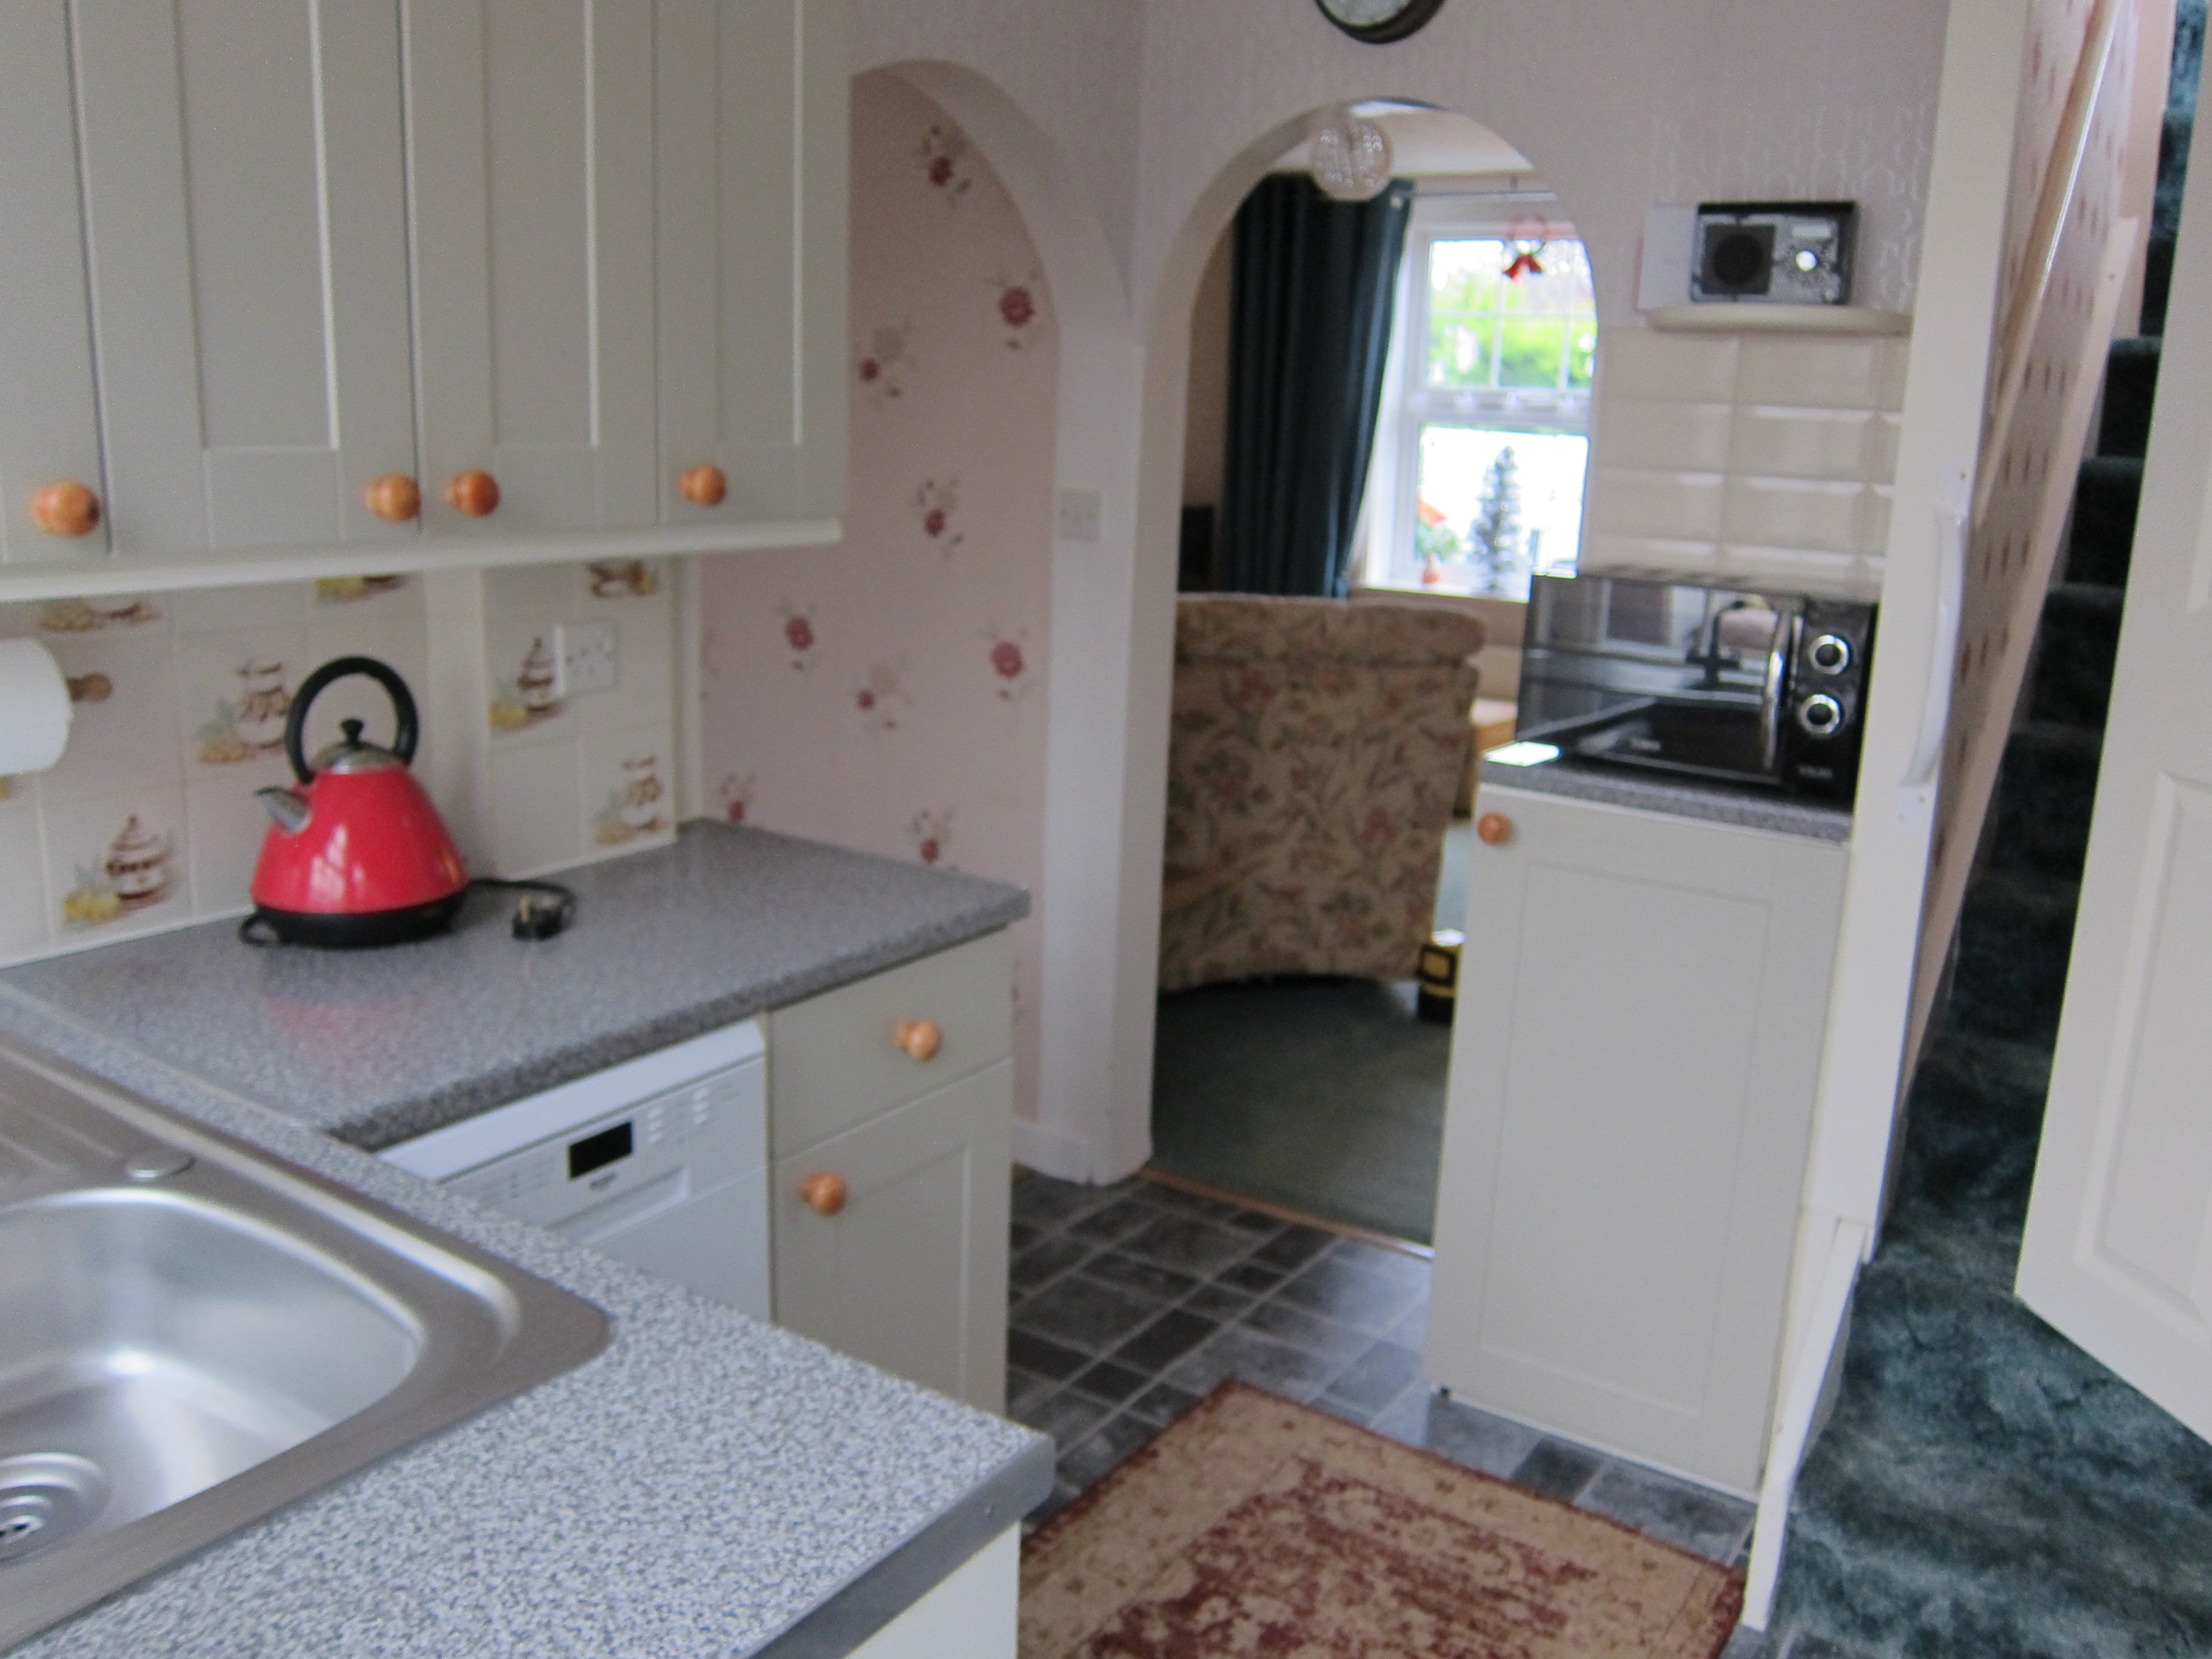 1 Westfields, Off Roke Lane, Godalming, Investments For Sale - IMG_6674.JPG